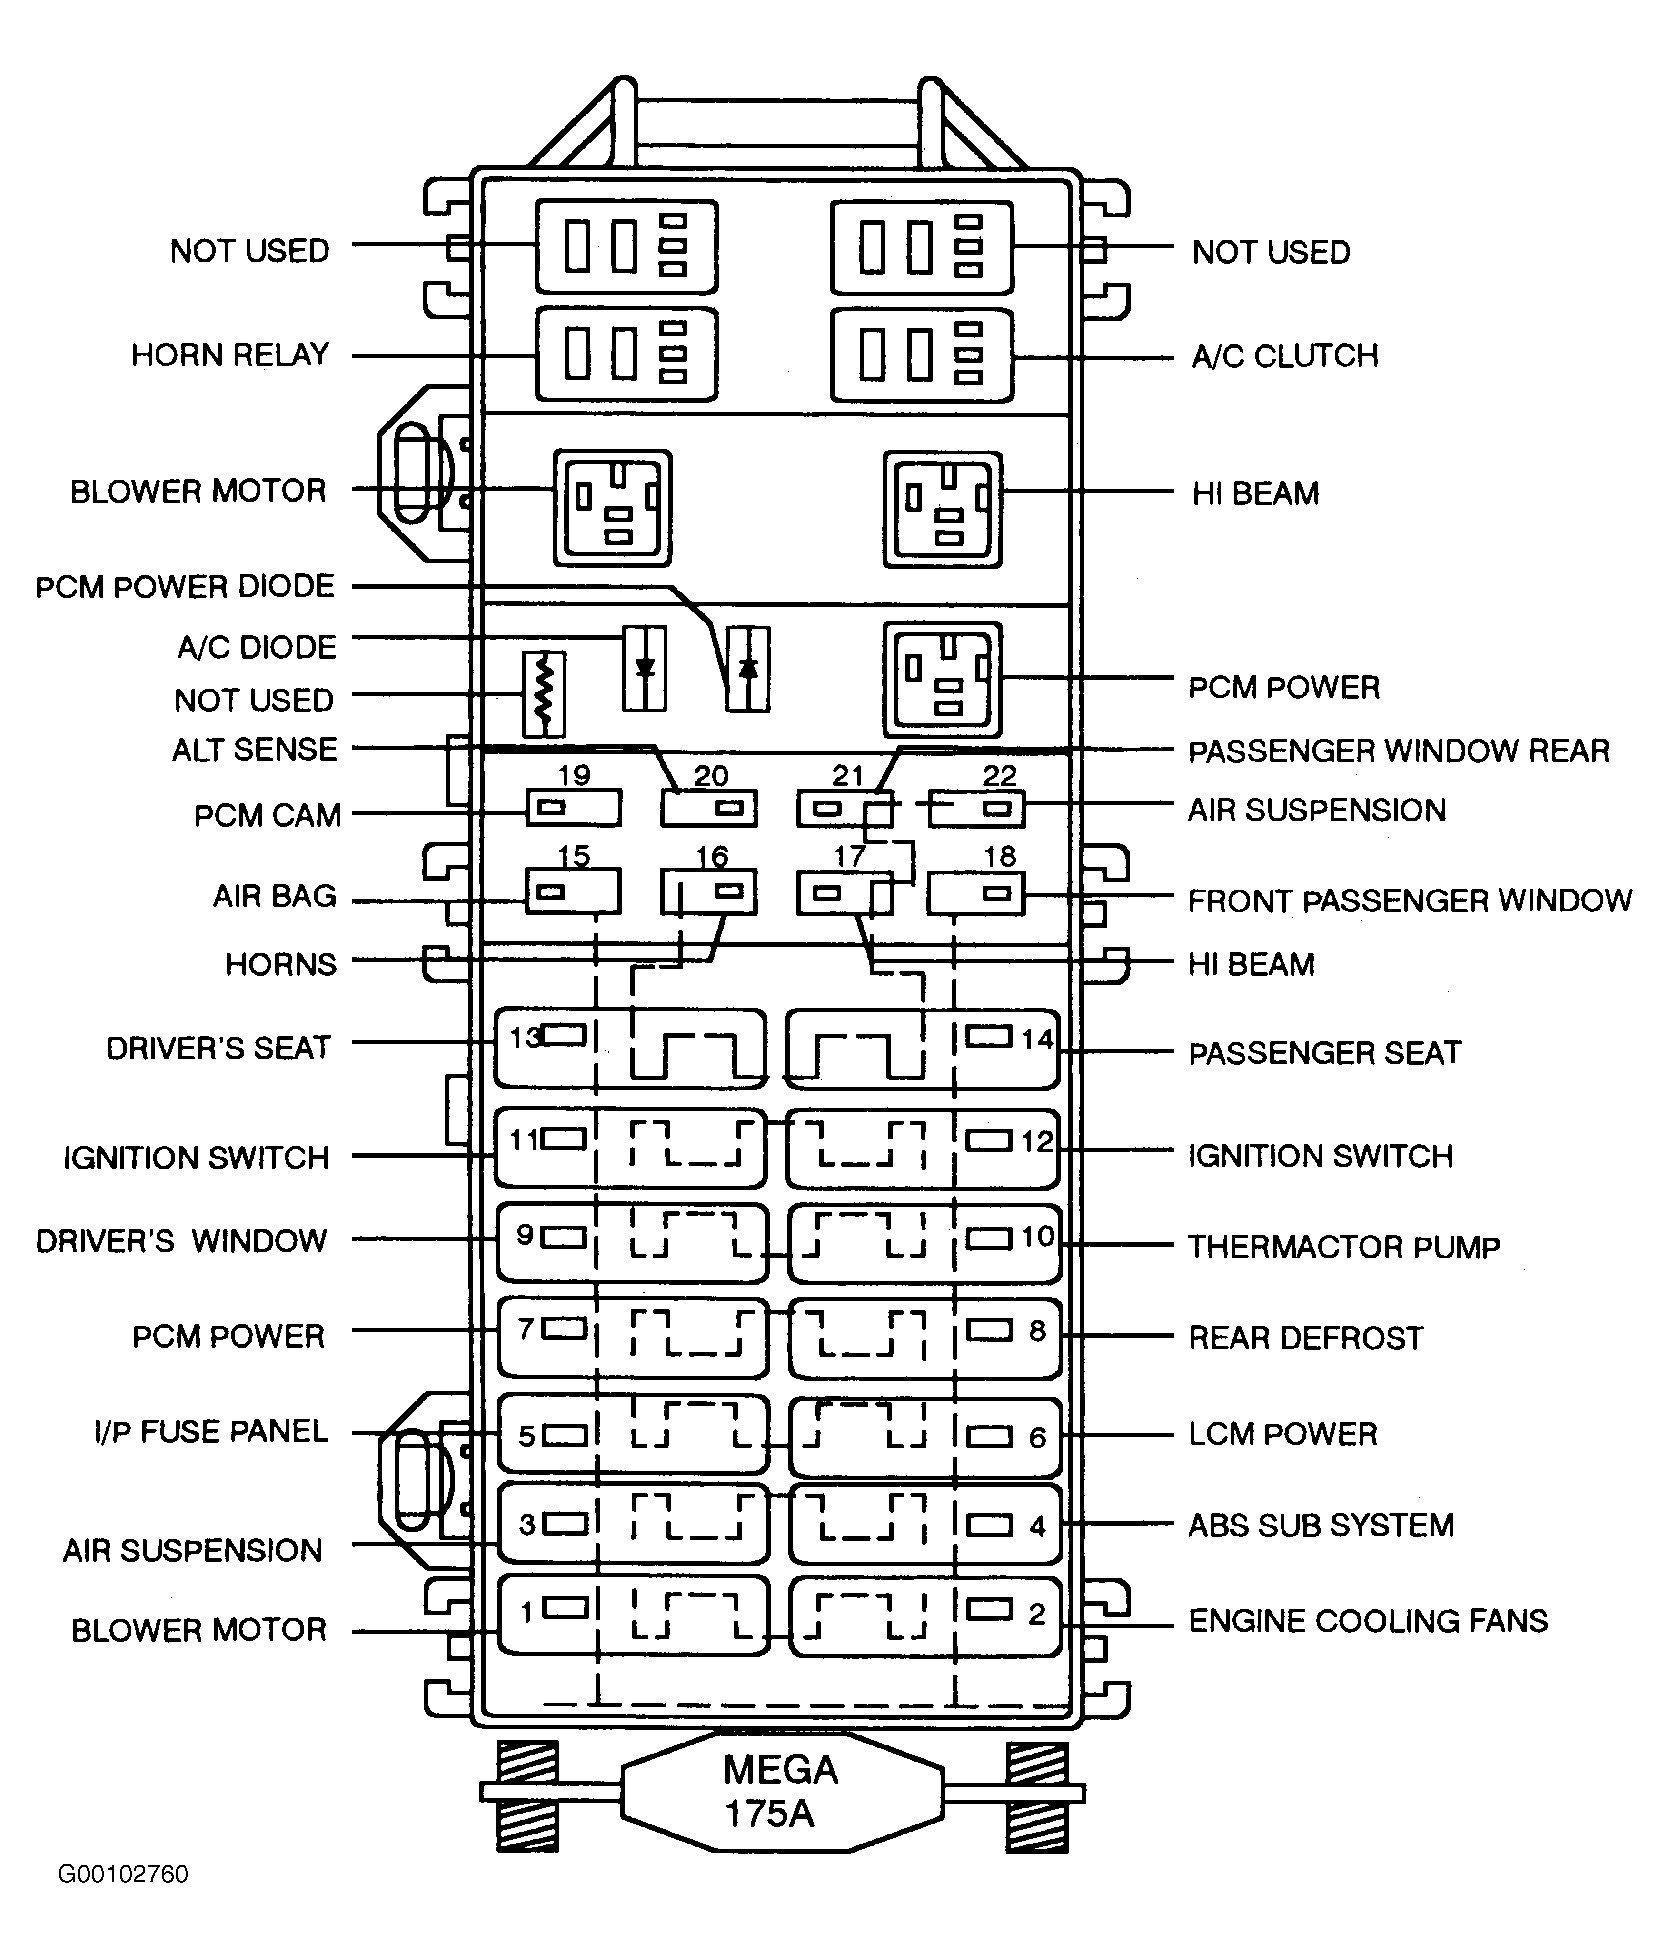 hight resolution of wiring diagram 1975 lincoln